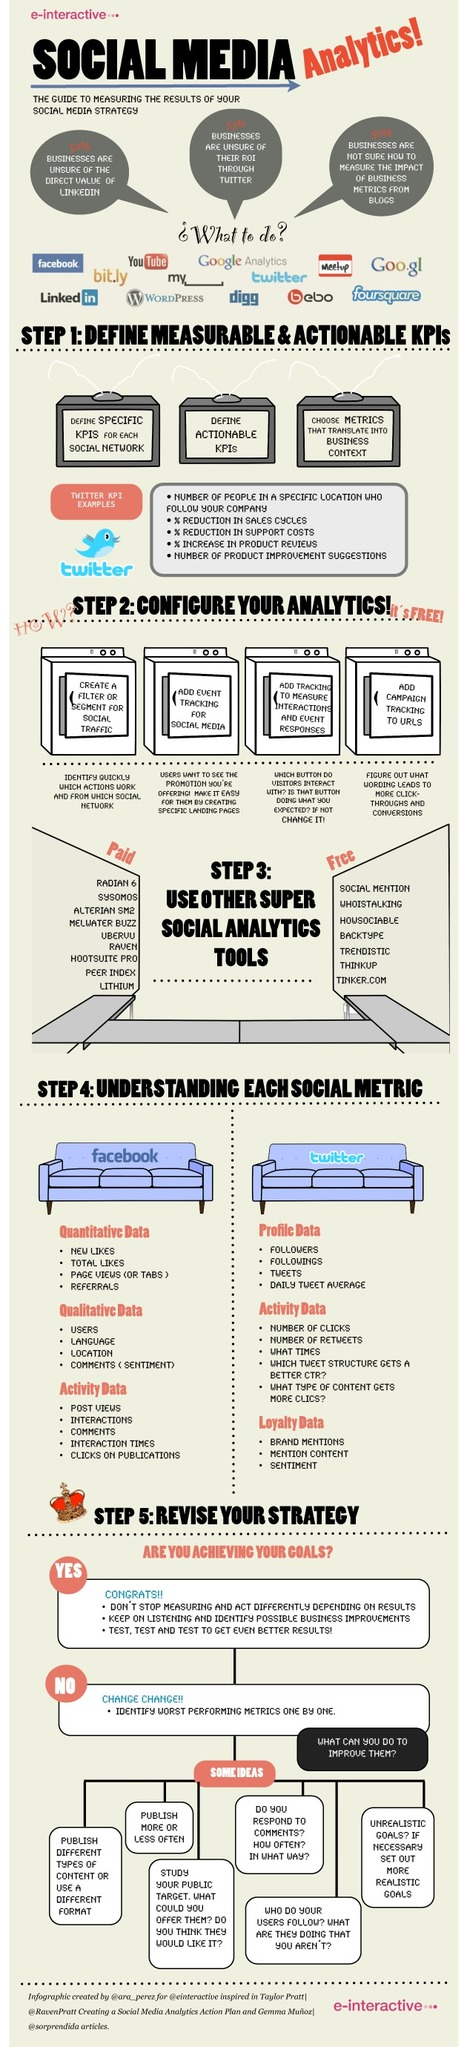 Measure Your Social Media Strategy with this Great Guide [Infographic] | Virtual Options: Social Media for Business | Scoop.it